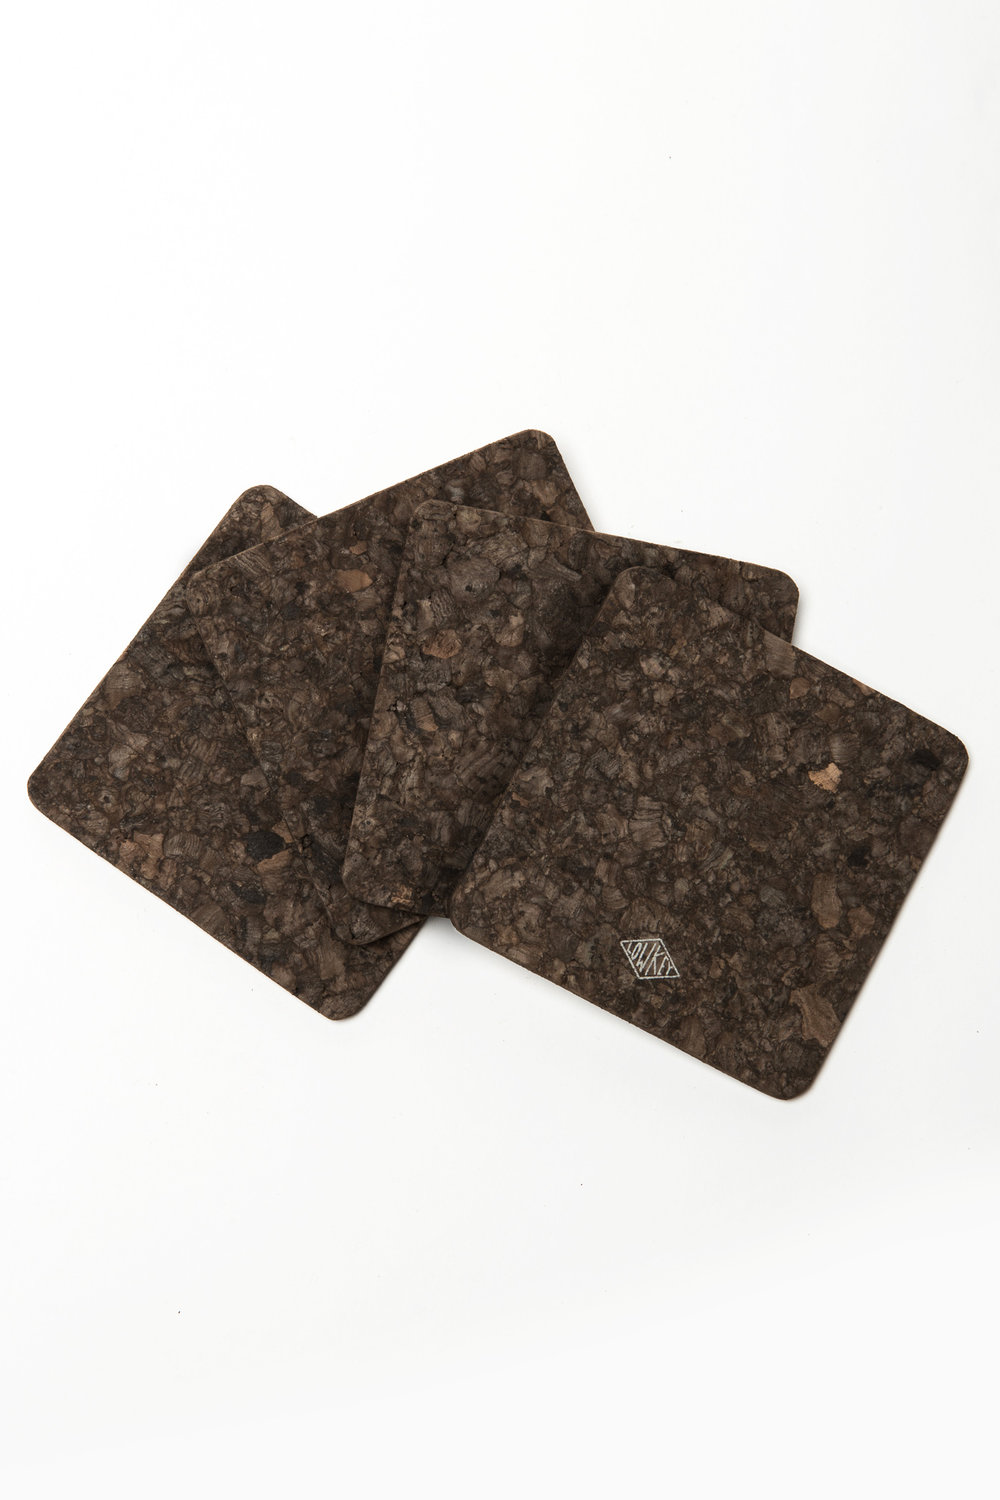 Black cork coasters-3.jpg